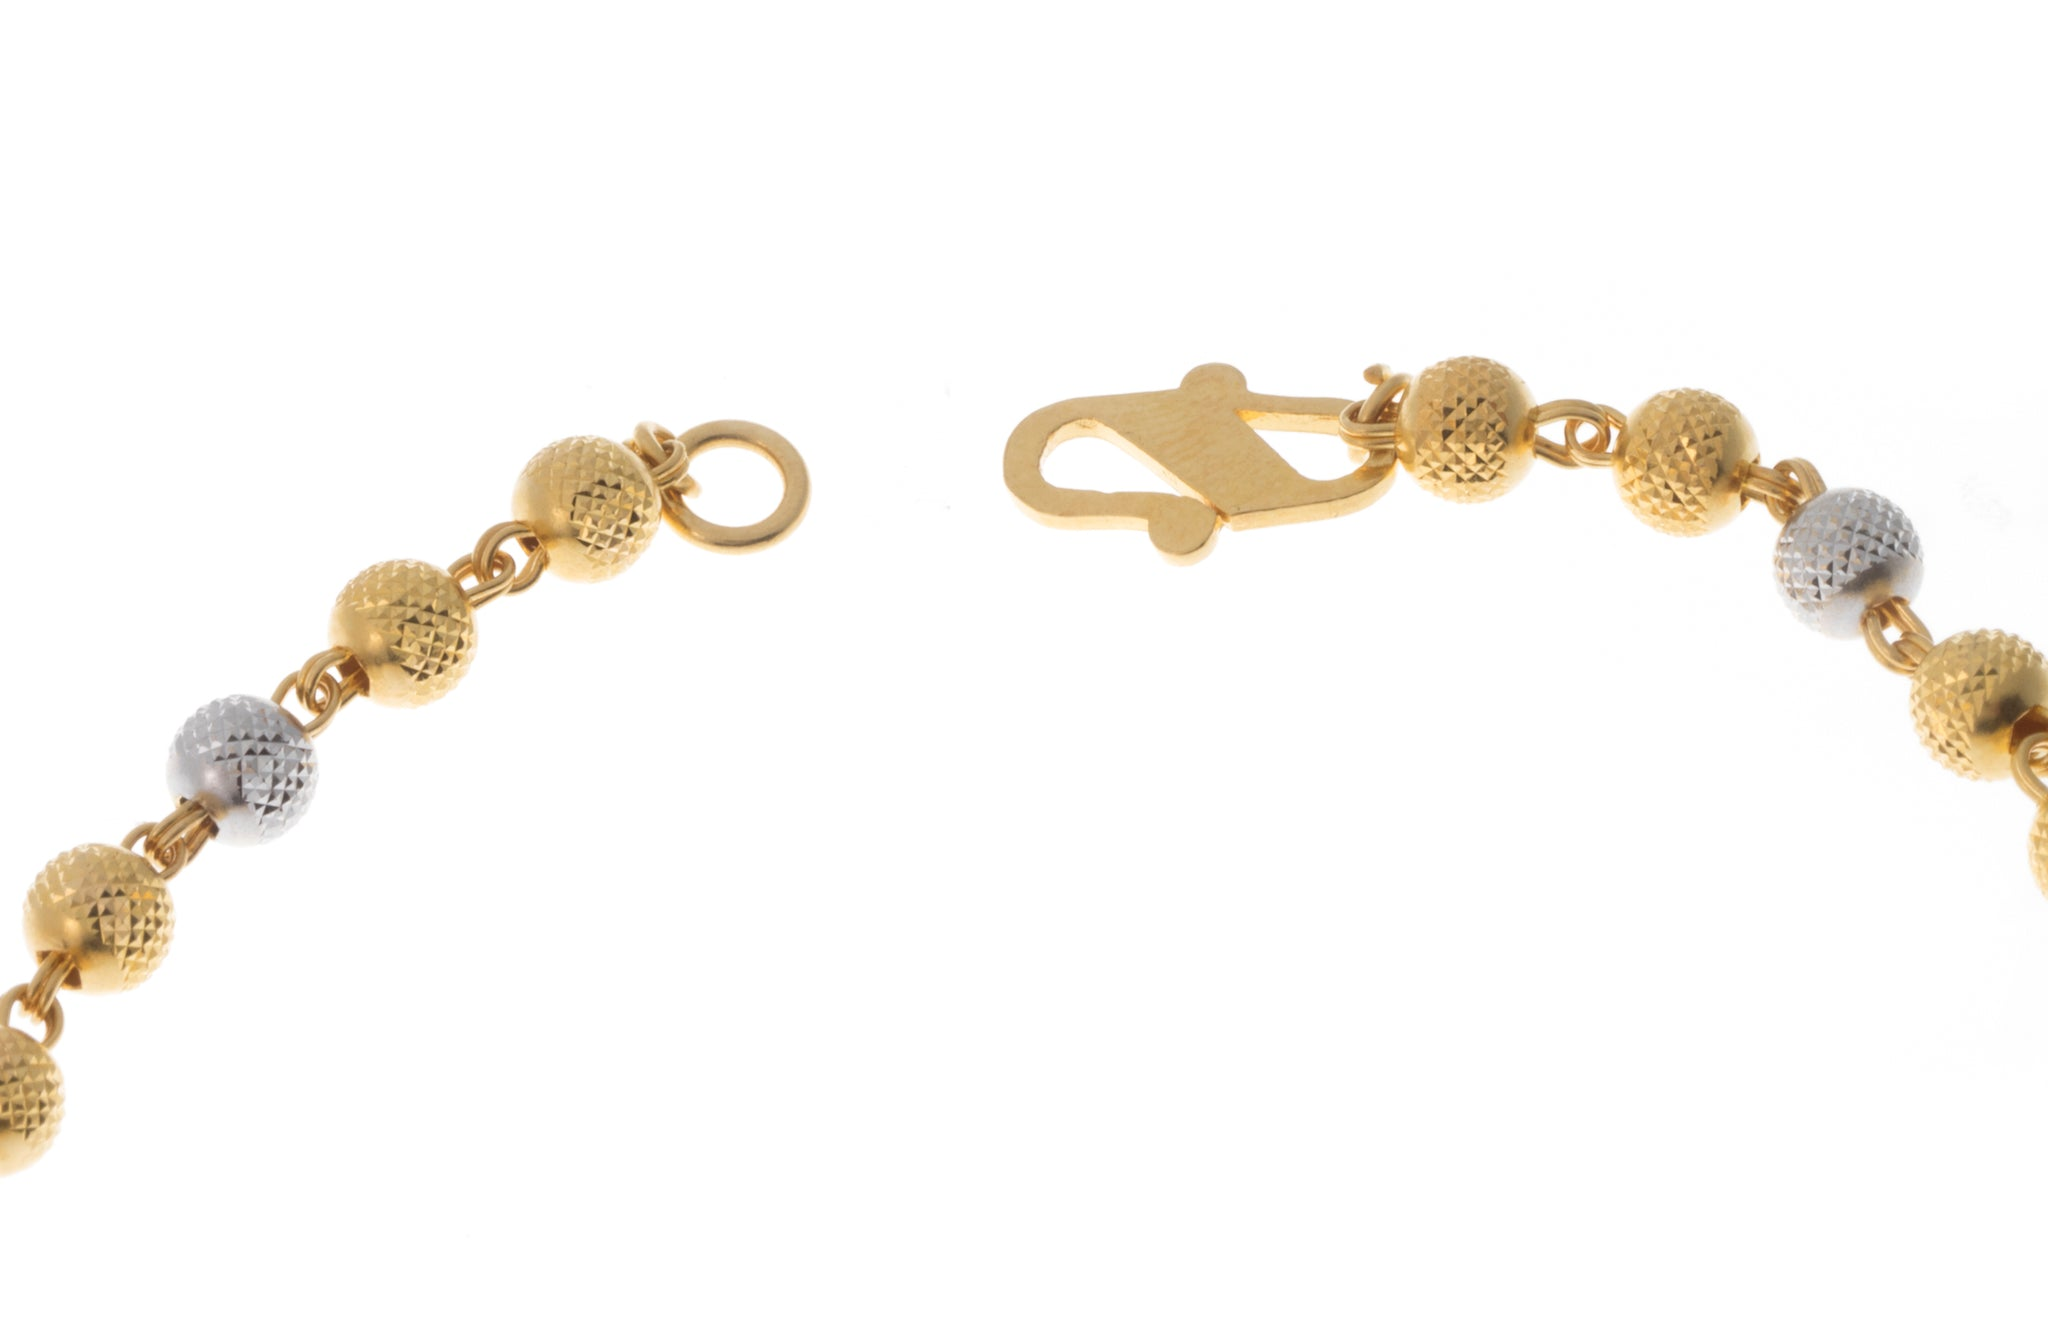 22ct Gold Bracelet with Diamond Cut and Rhodium Design (5.3g) LBR-7396